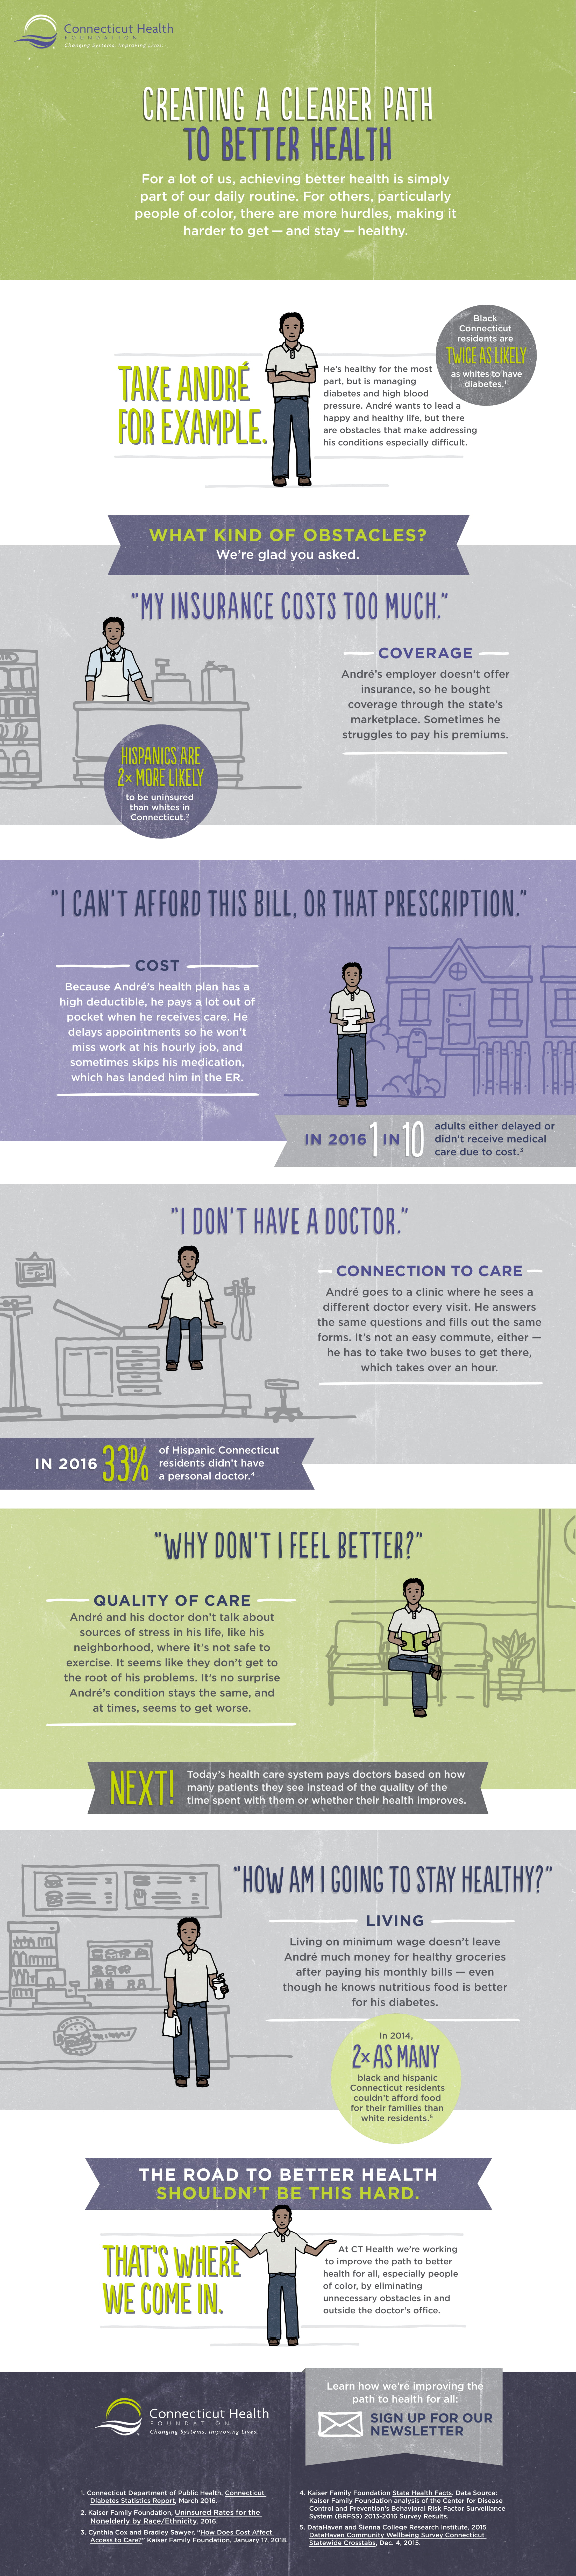 Infographic: Creating a clearer path to better health | CT